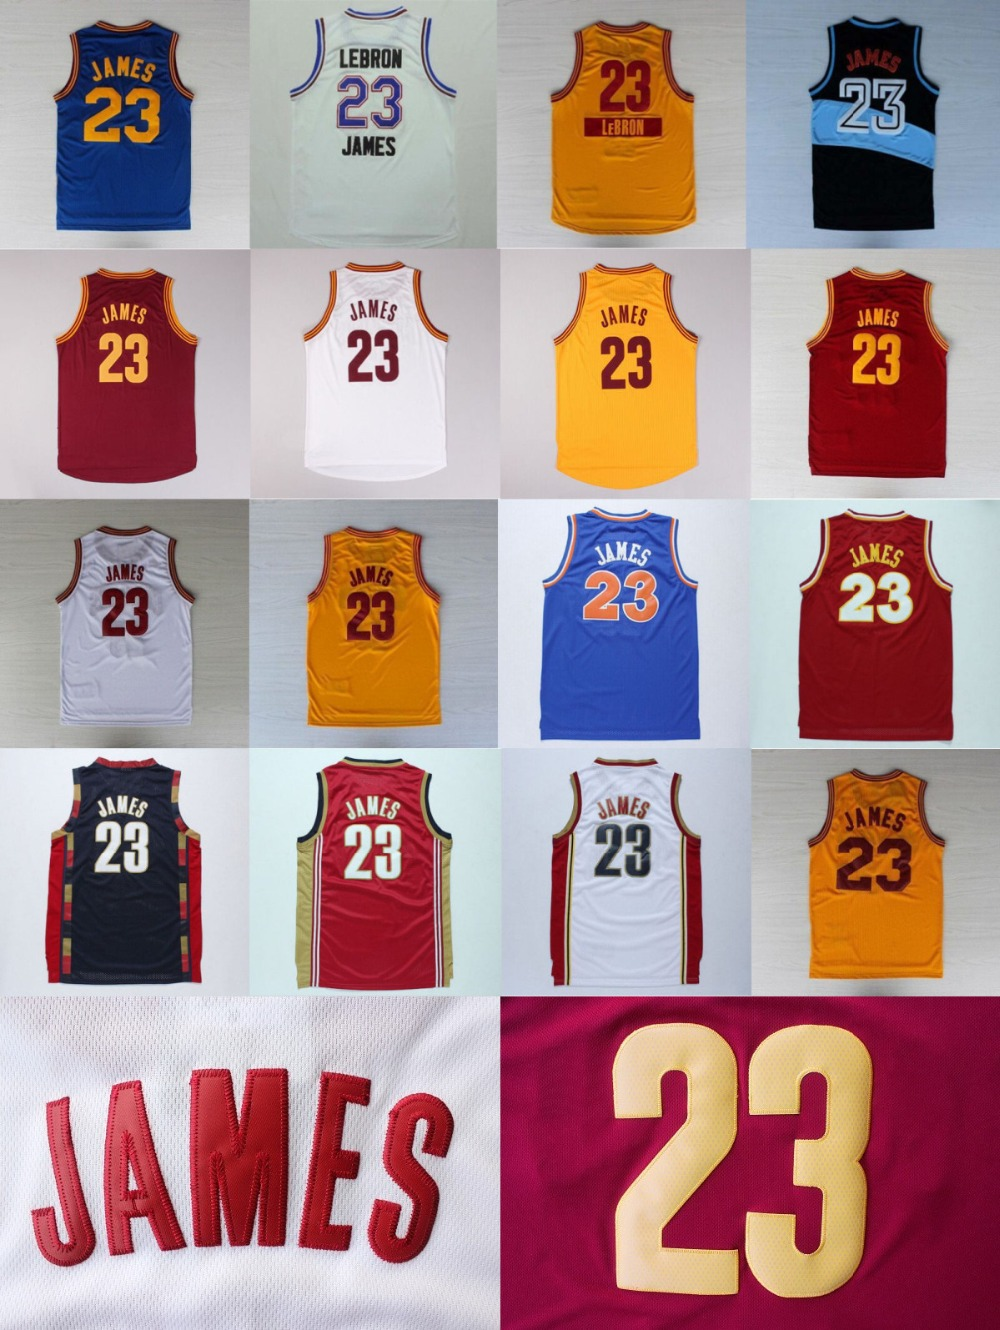 LeBron James Jersey All Star Yellow Blue Home Red White Black Retro 23 LeBron James Christmas Jersey Super Hot Top Quality